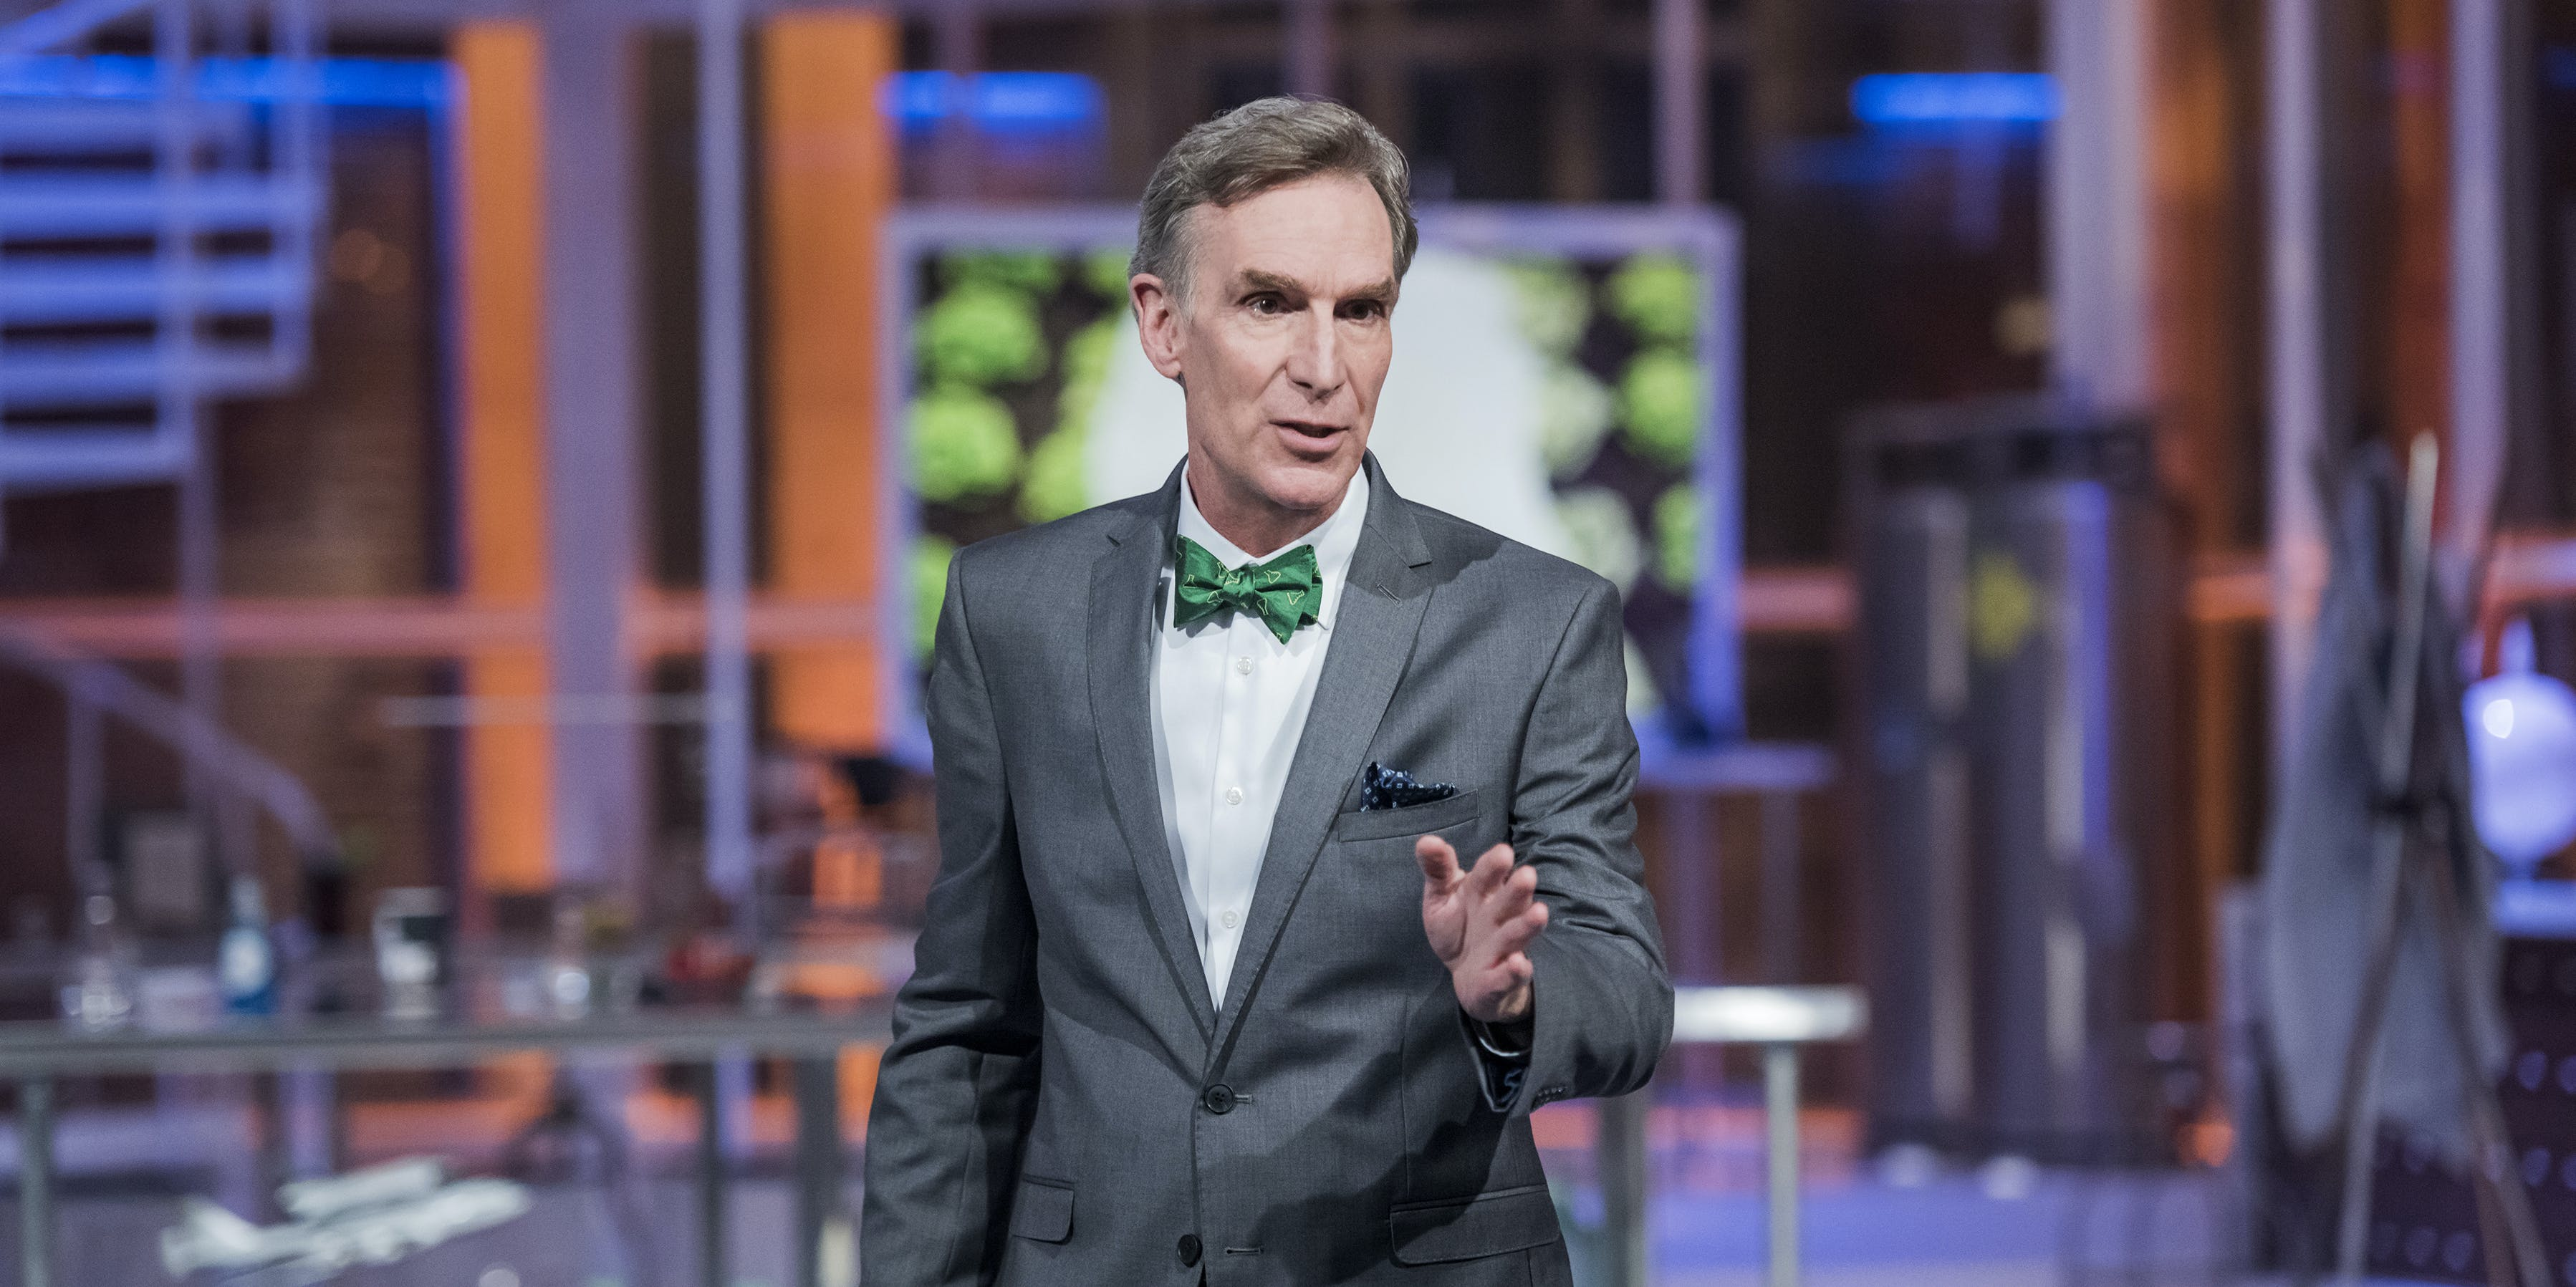 Here's How Netflix is Making Bill Nye Even Funnier